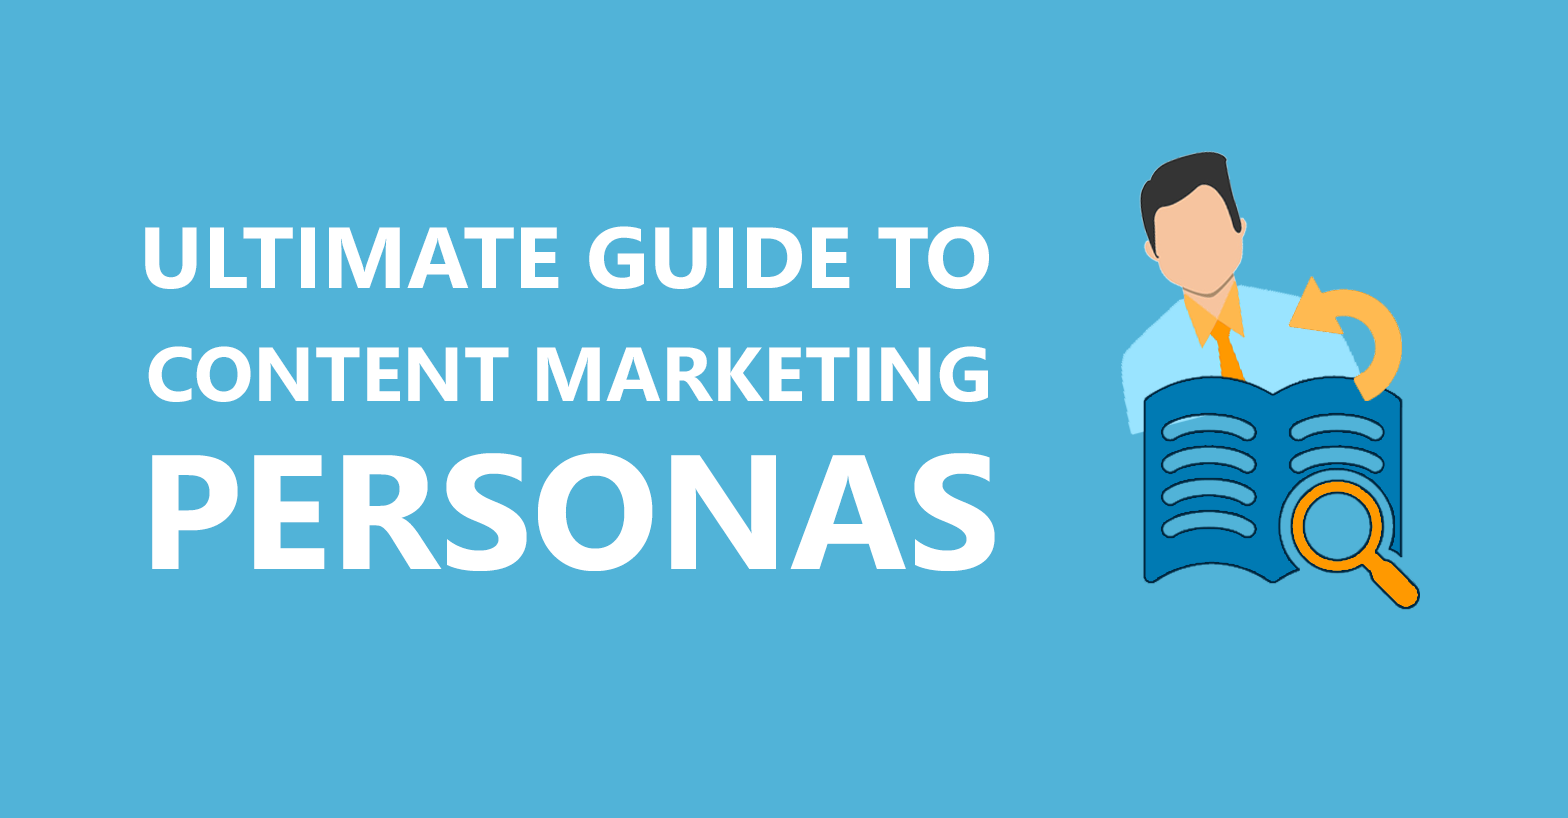 Content Marketing Personas: Your Ultimate Guide